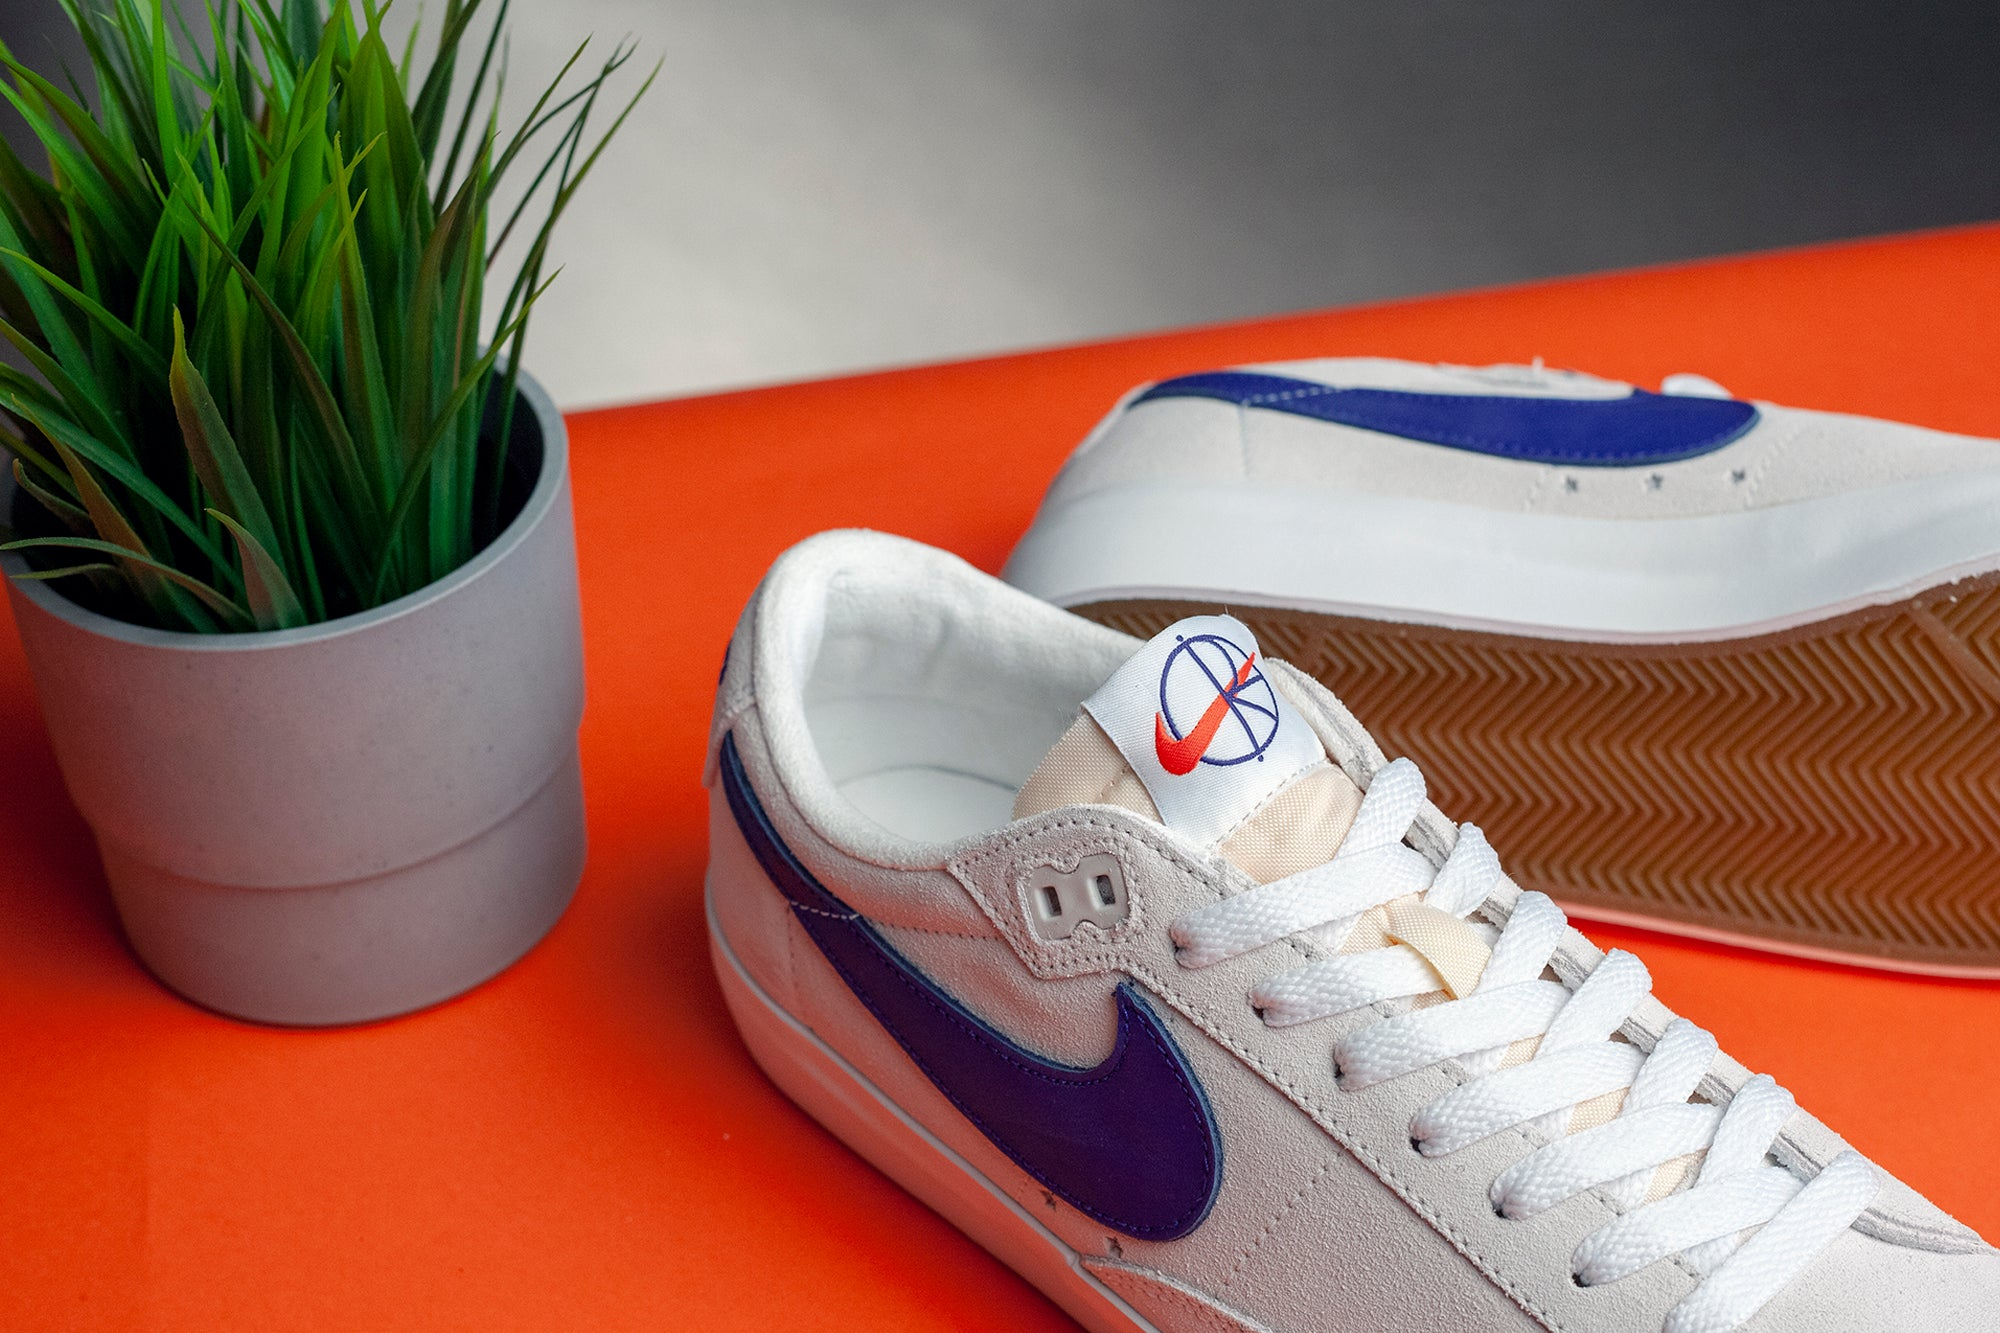 Nike_SB_x_Polar_Zoom_Blazer_GT_Low_4